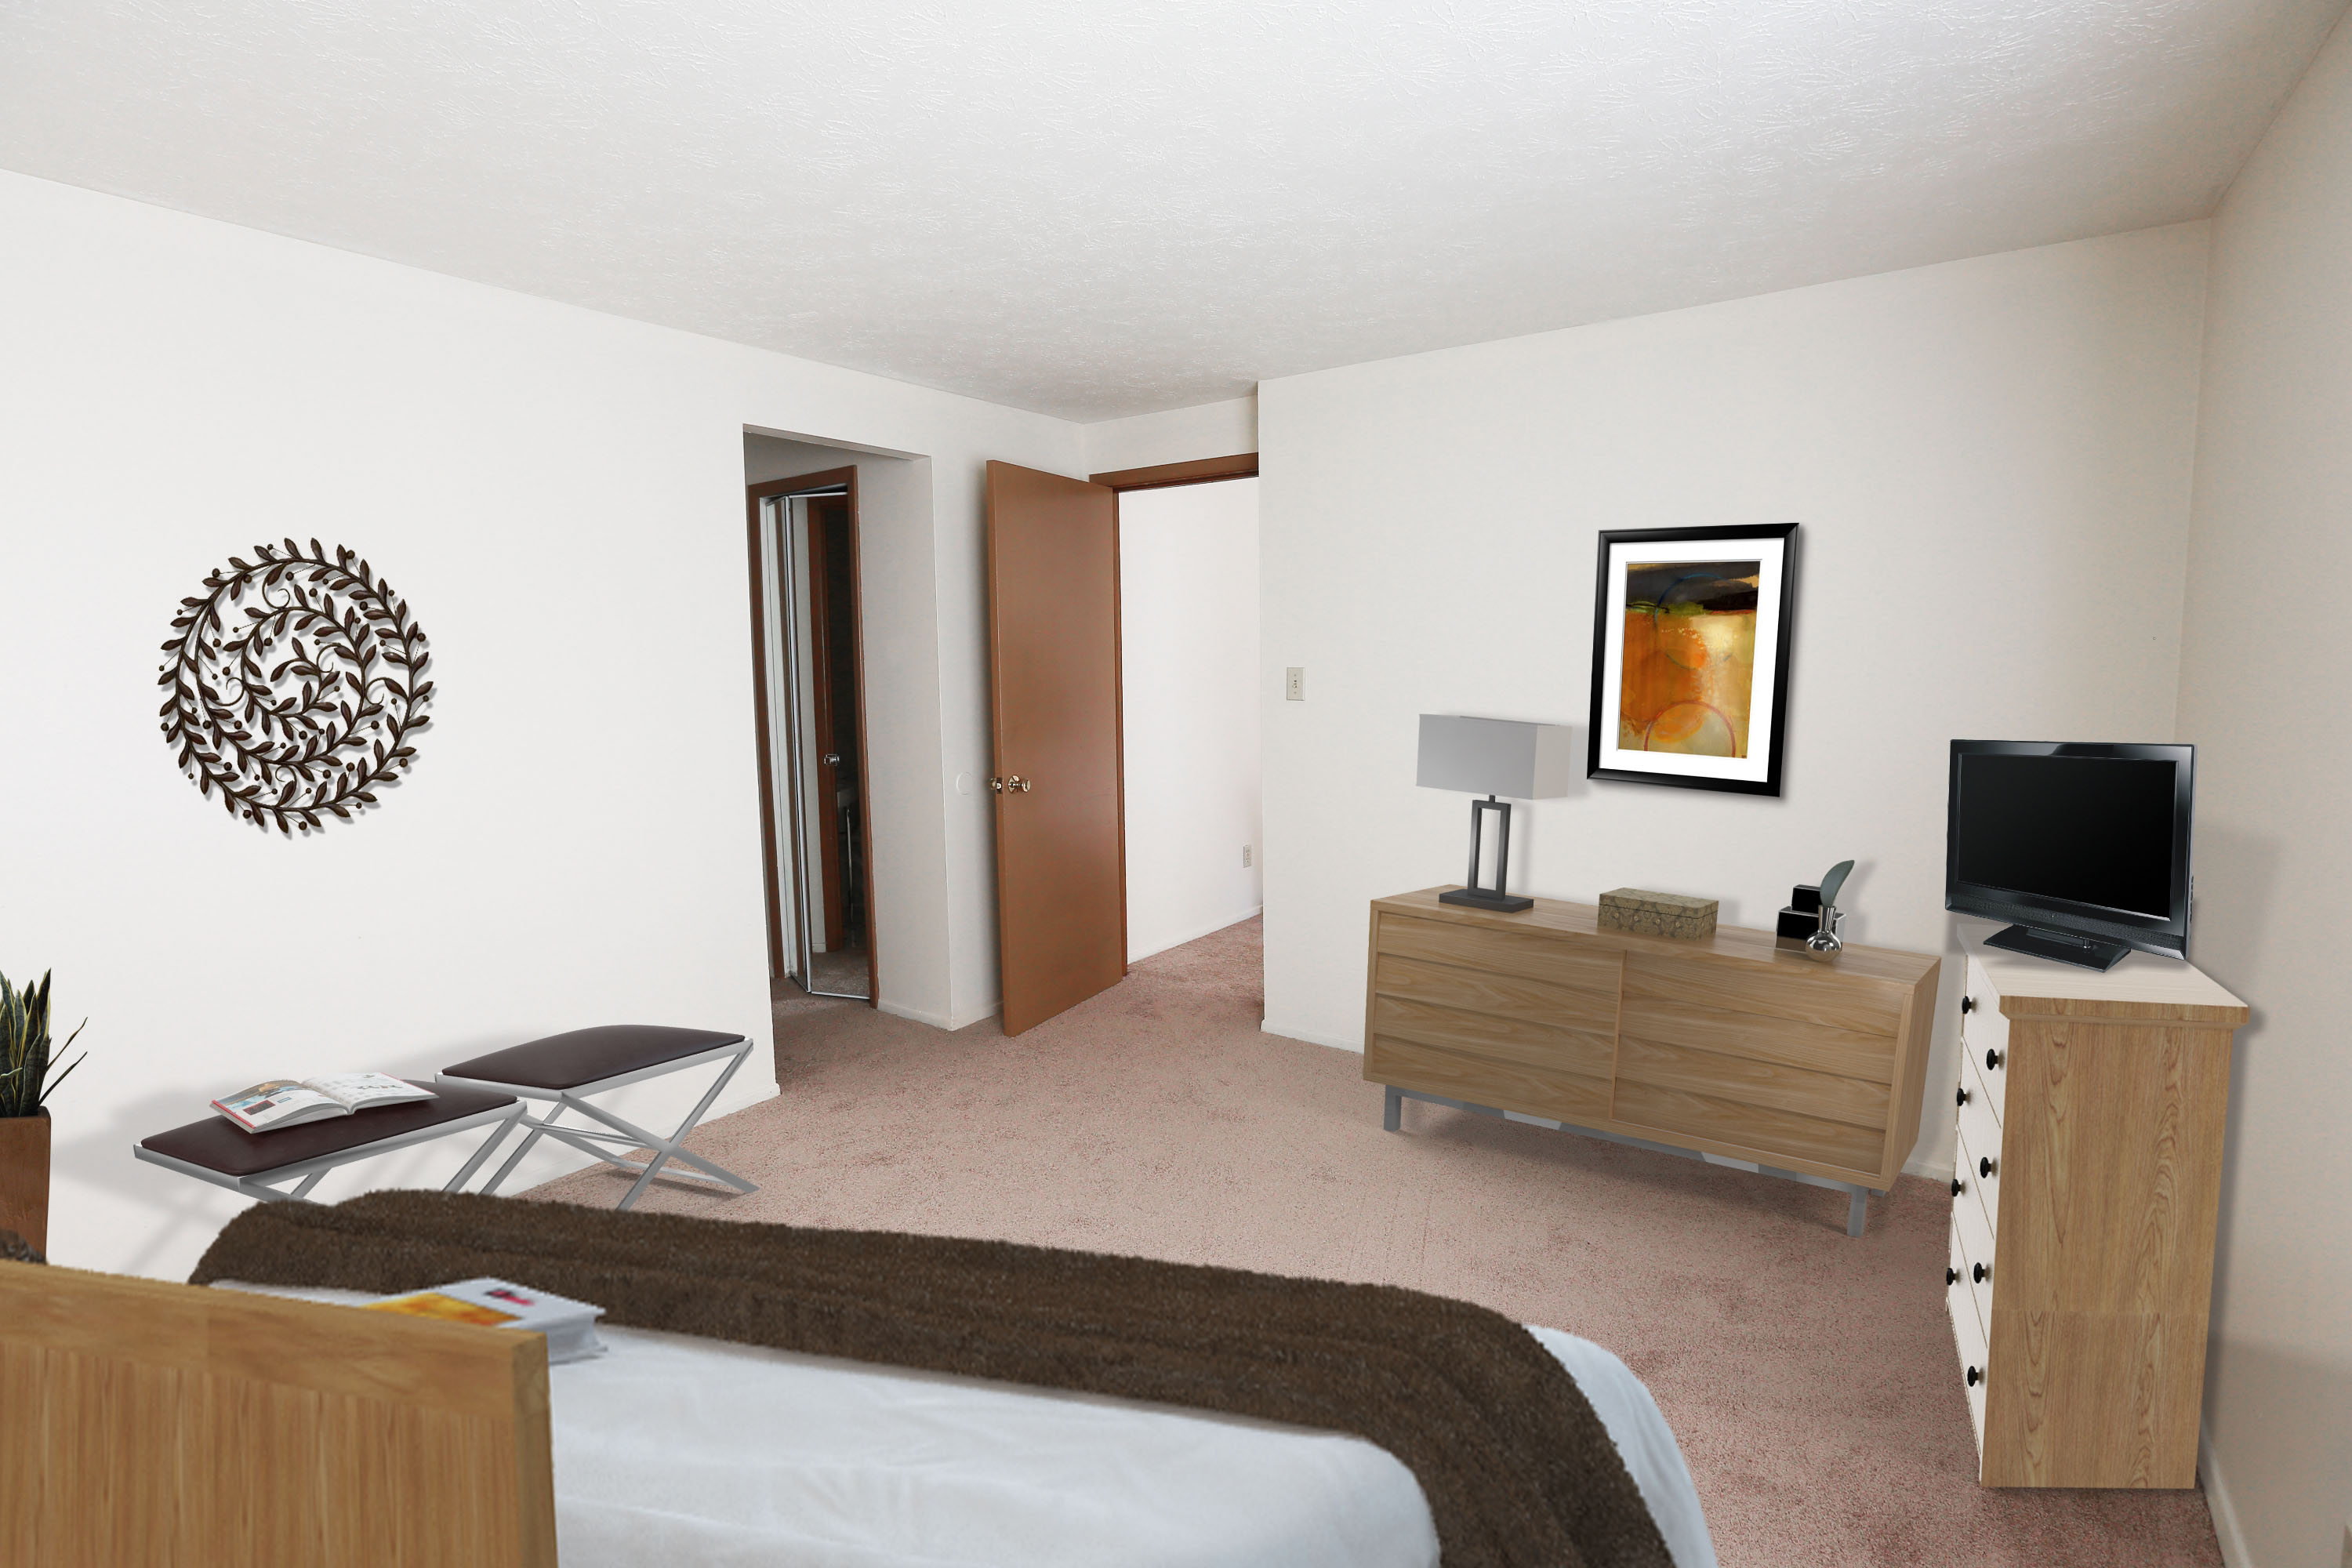 2C Bedroom #1 Furnished at the Greenridge on Euclid Apartments in Euclid, OH